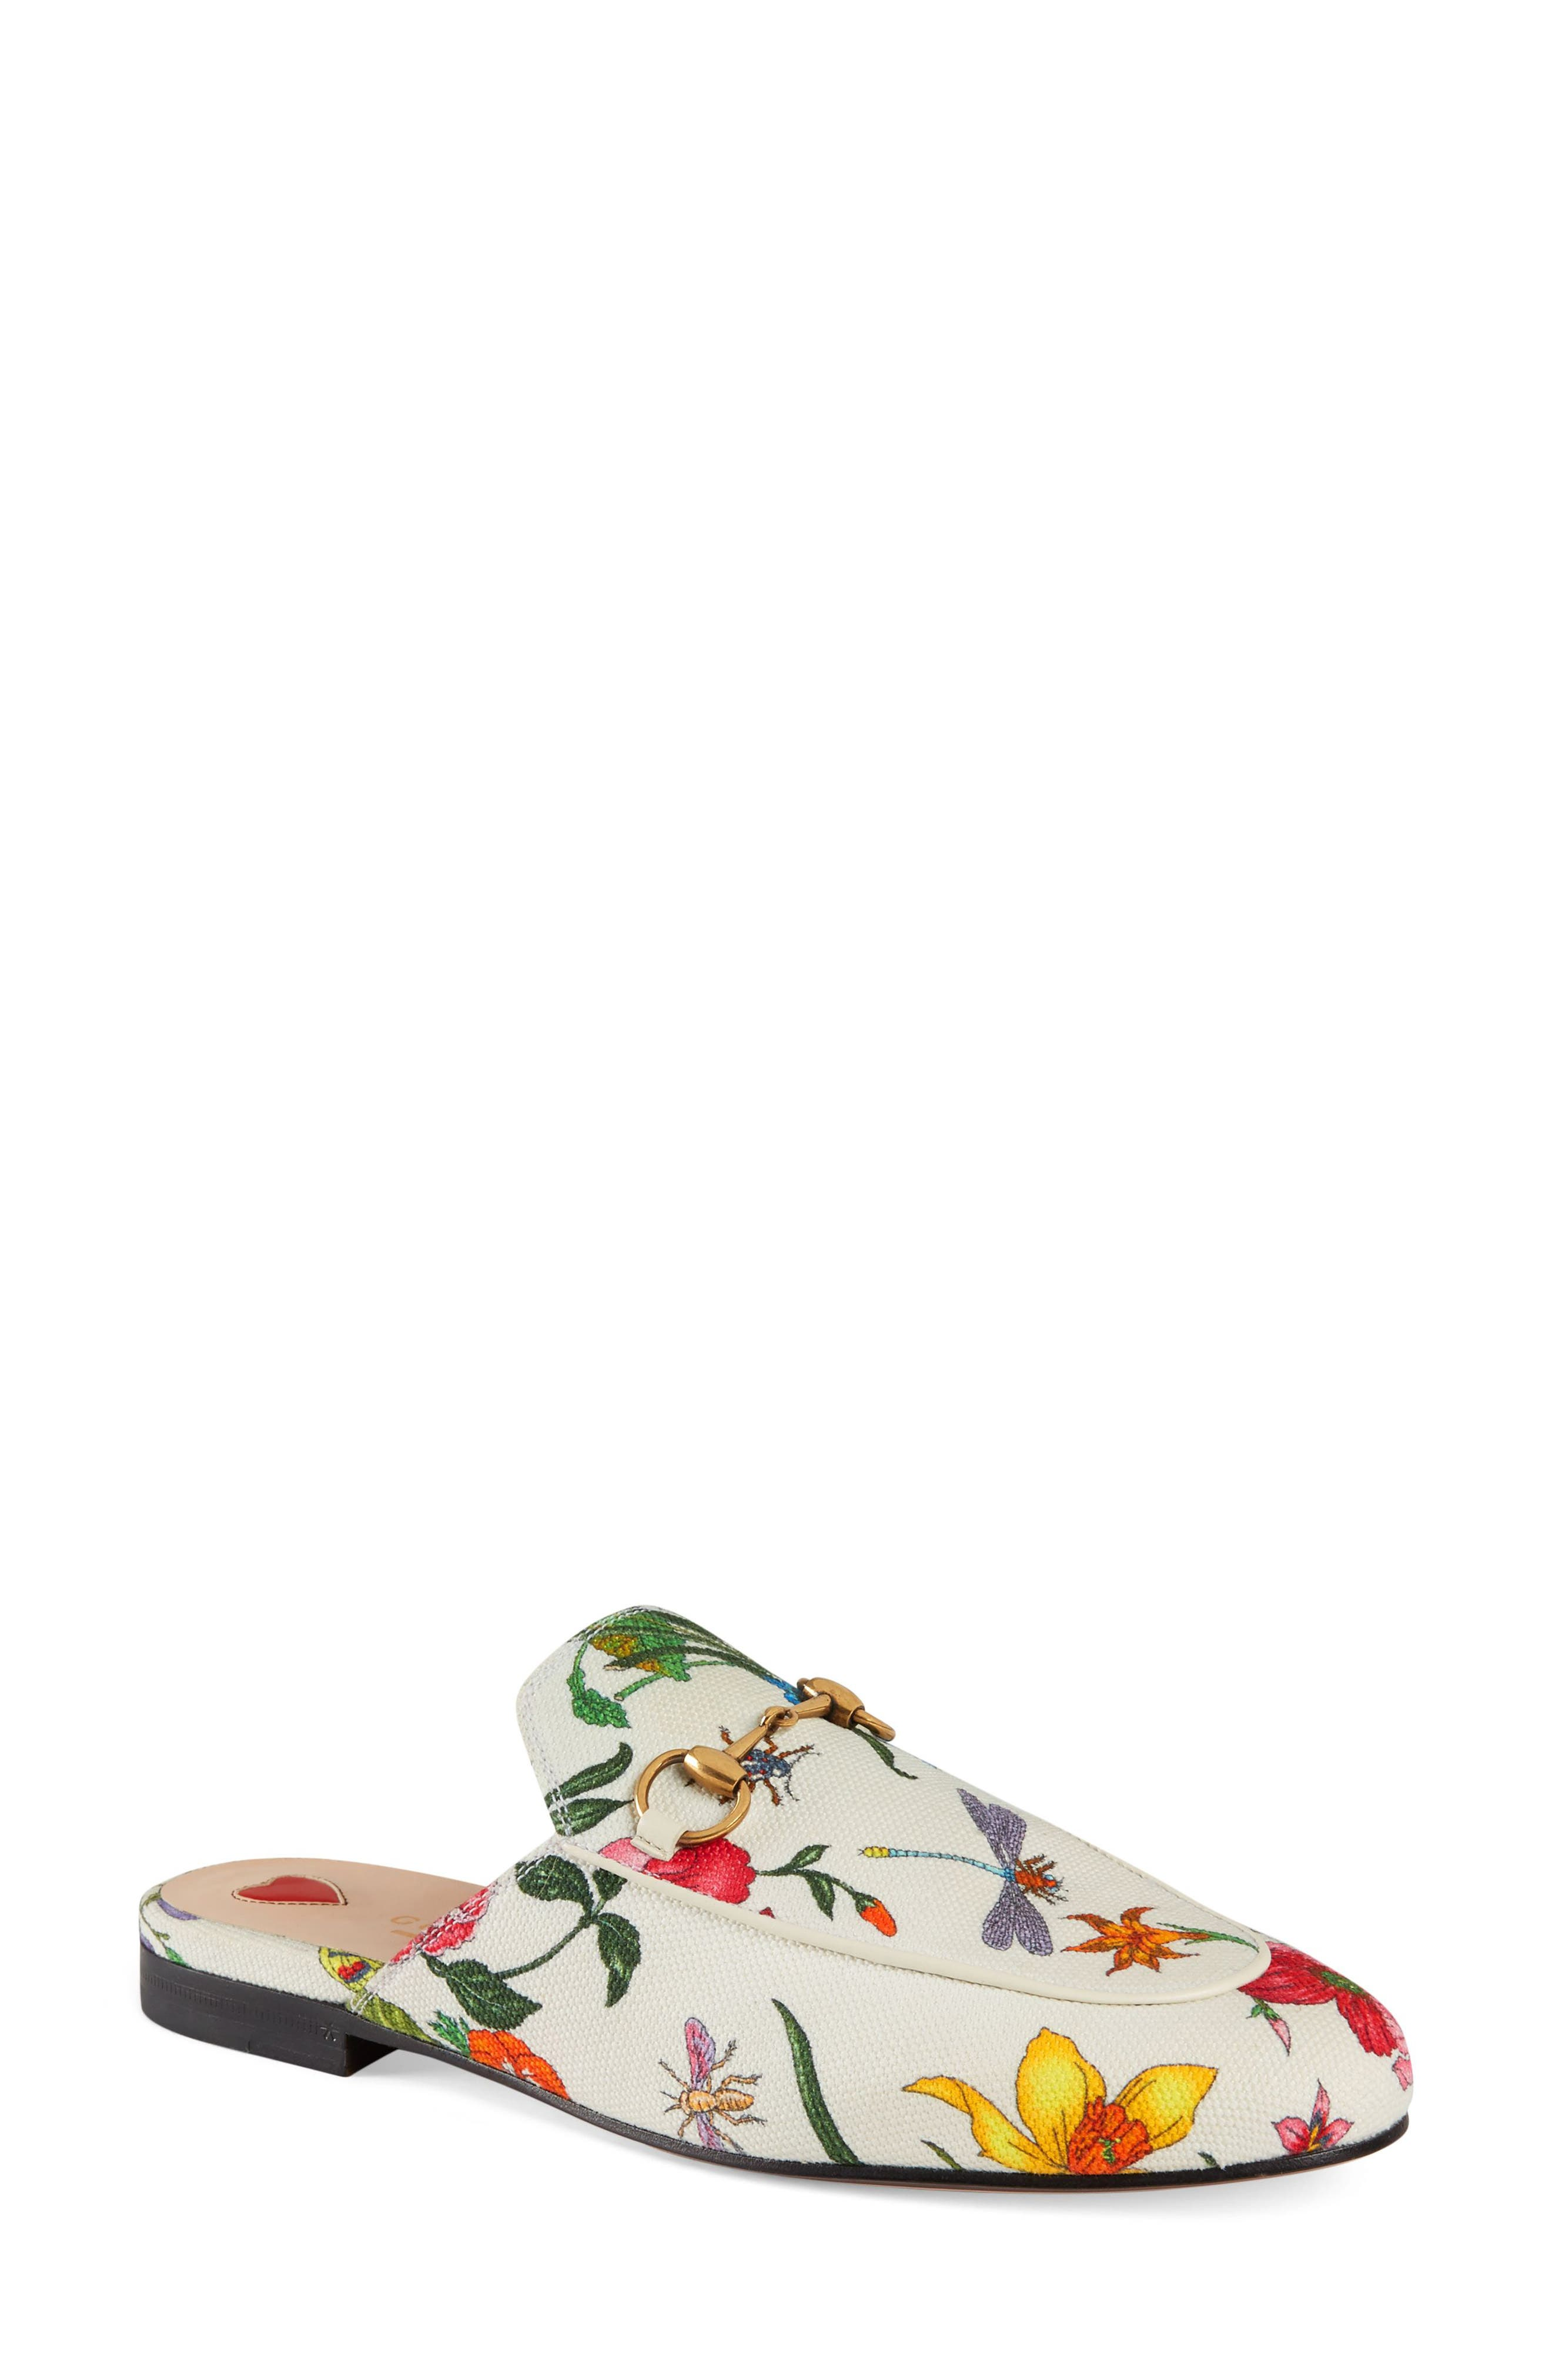 GUCCI, Princetown Loafer Mule, Main thumbnail 1, color, WHITE FLORAL